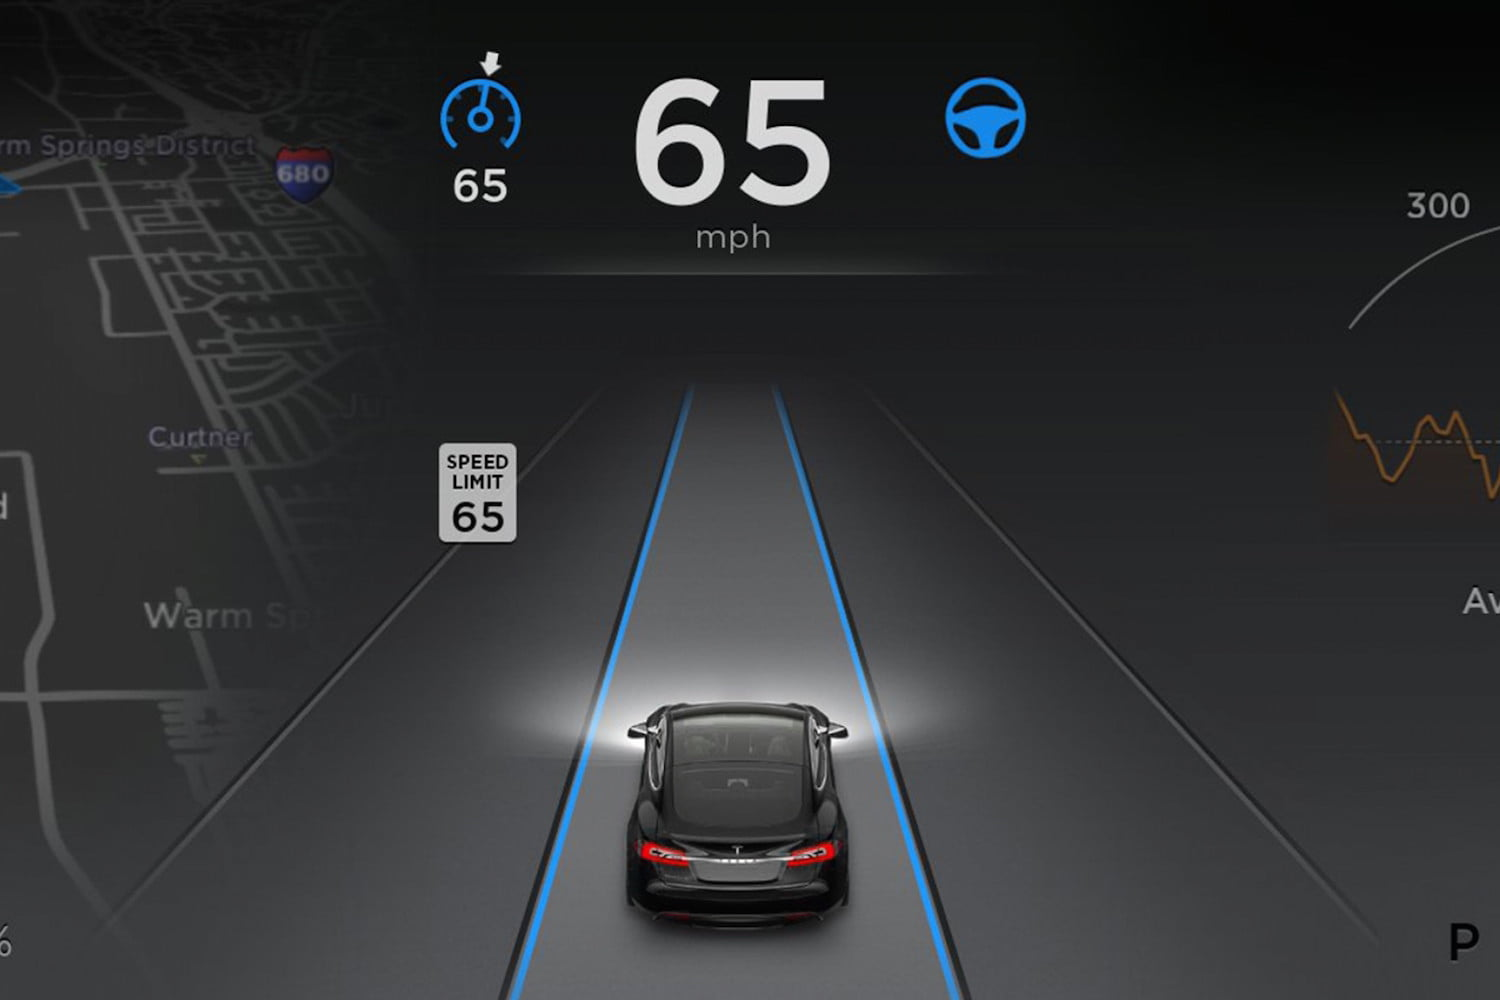 Lane Keep Assist >> Lane Keep Assist and Lane Departure Warning   Driving Tech Explained   Digital Trends